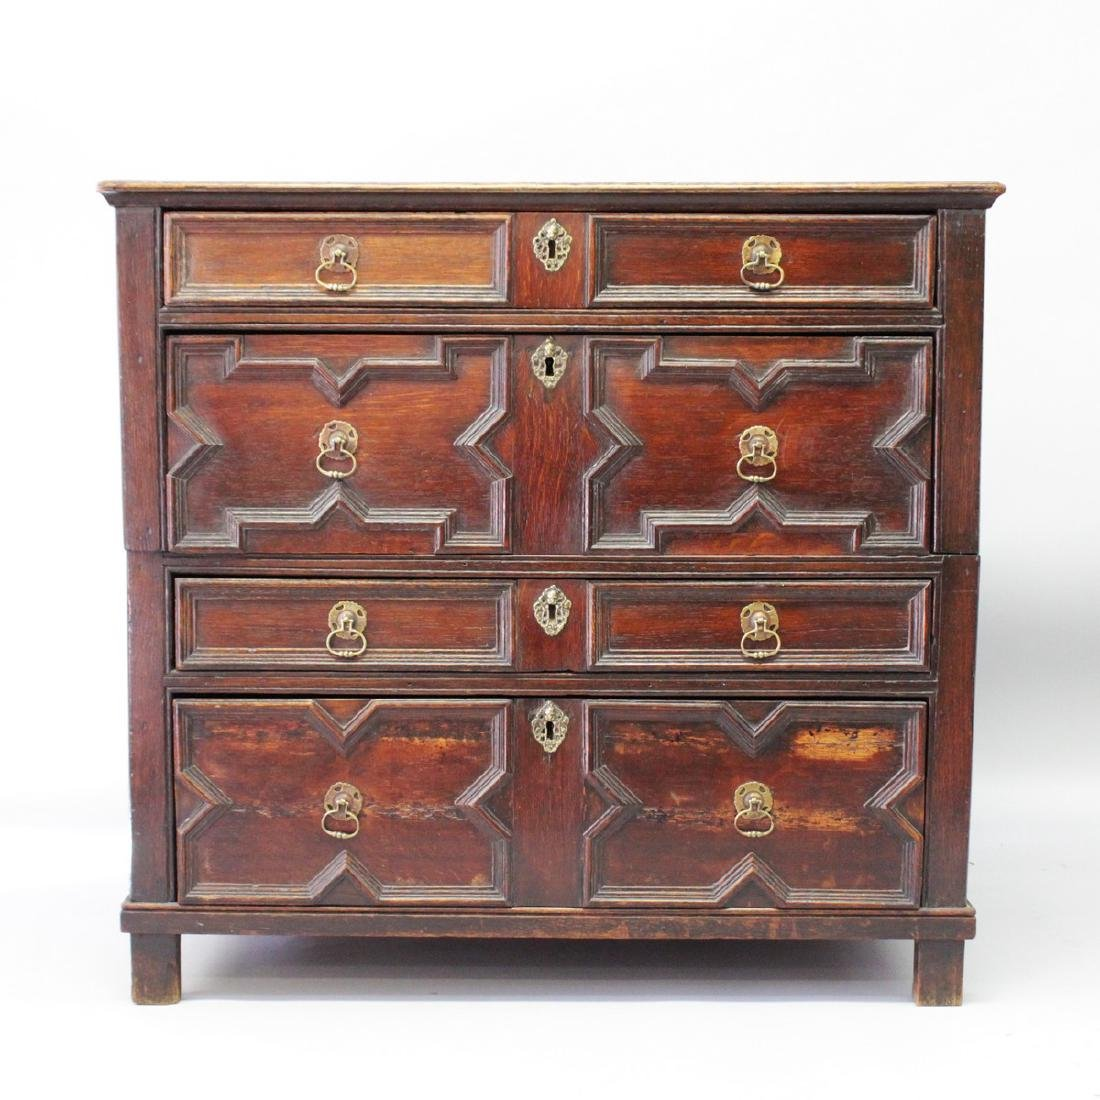 A 17TH CENTURY OAK CHEST OF DRAWERS, in two parts, with